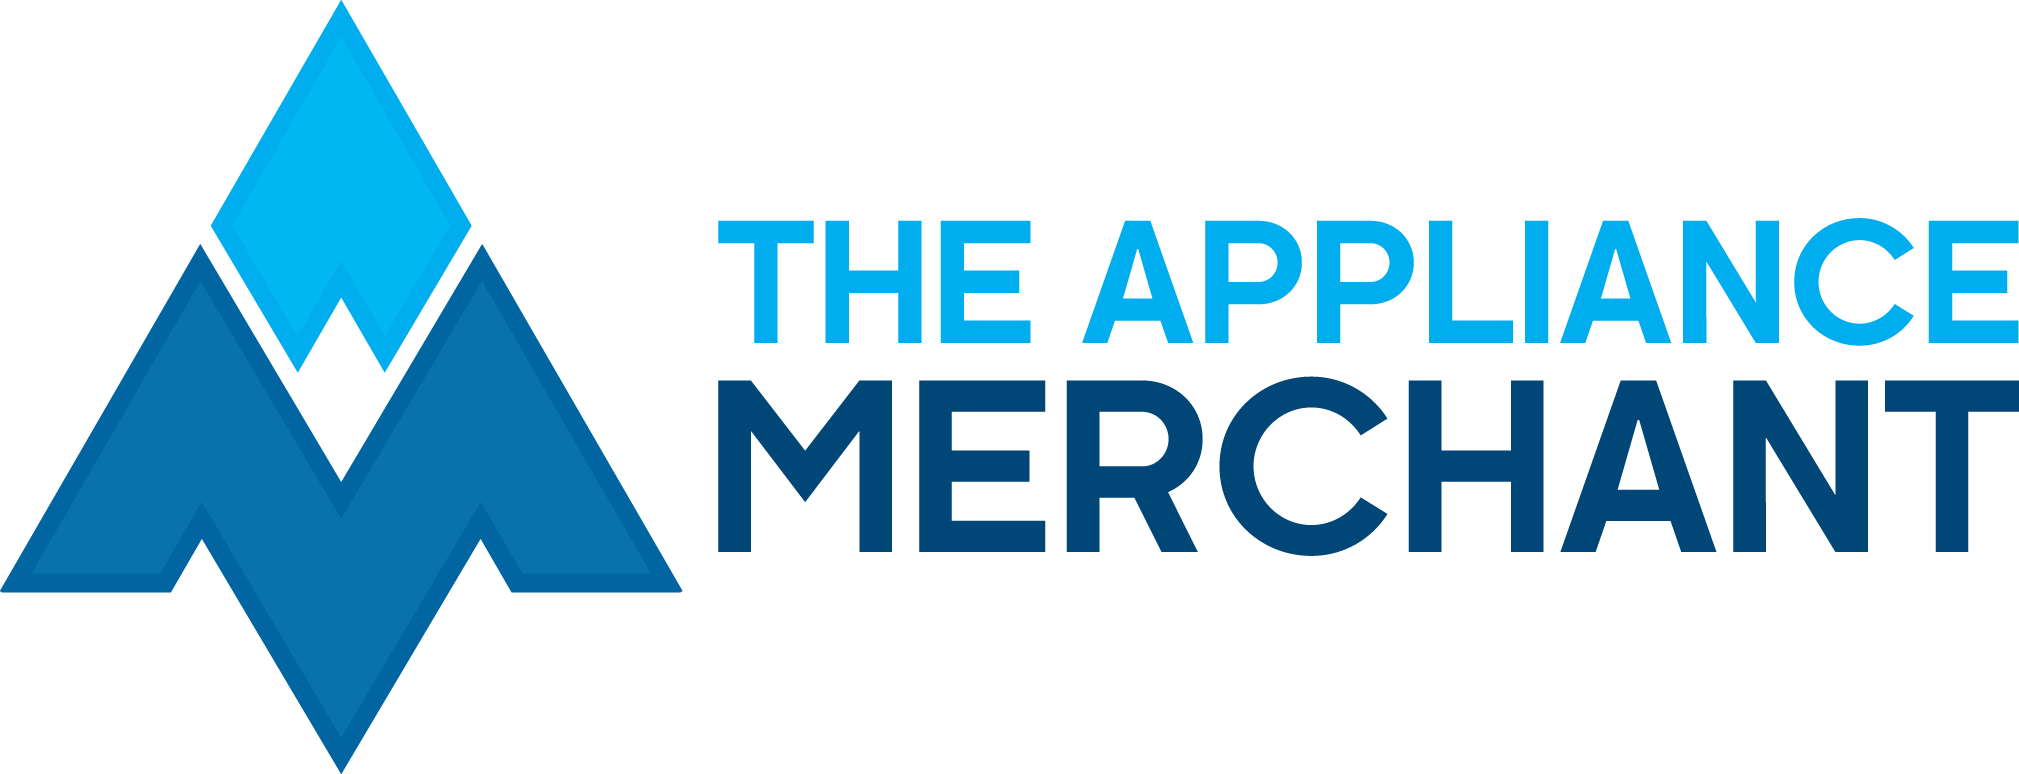 The Appliance Merchant Logo